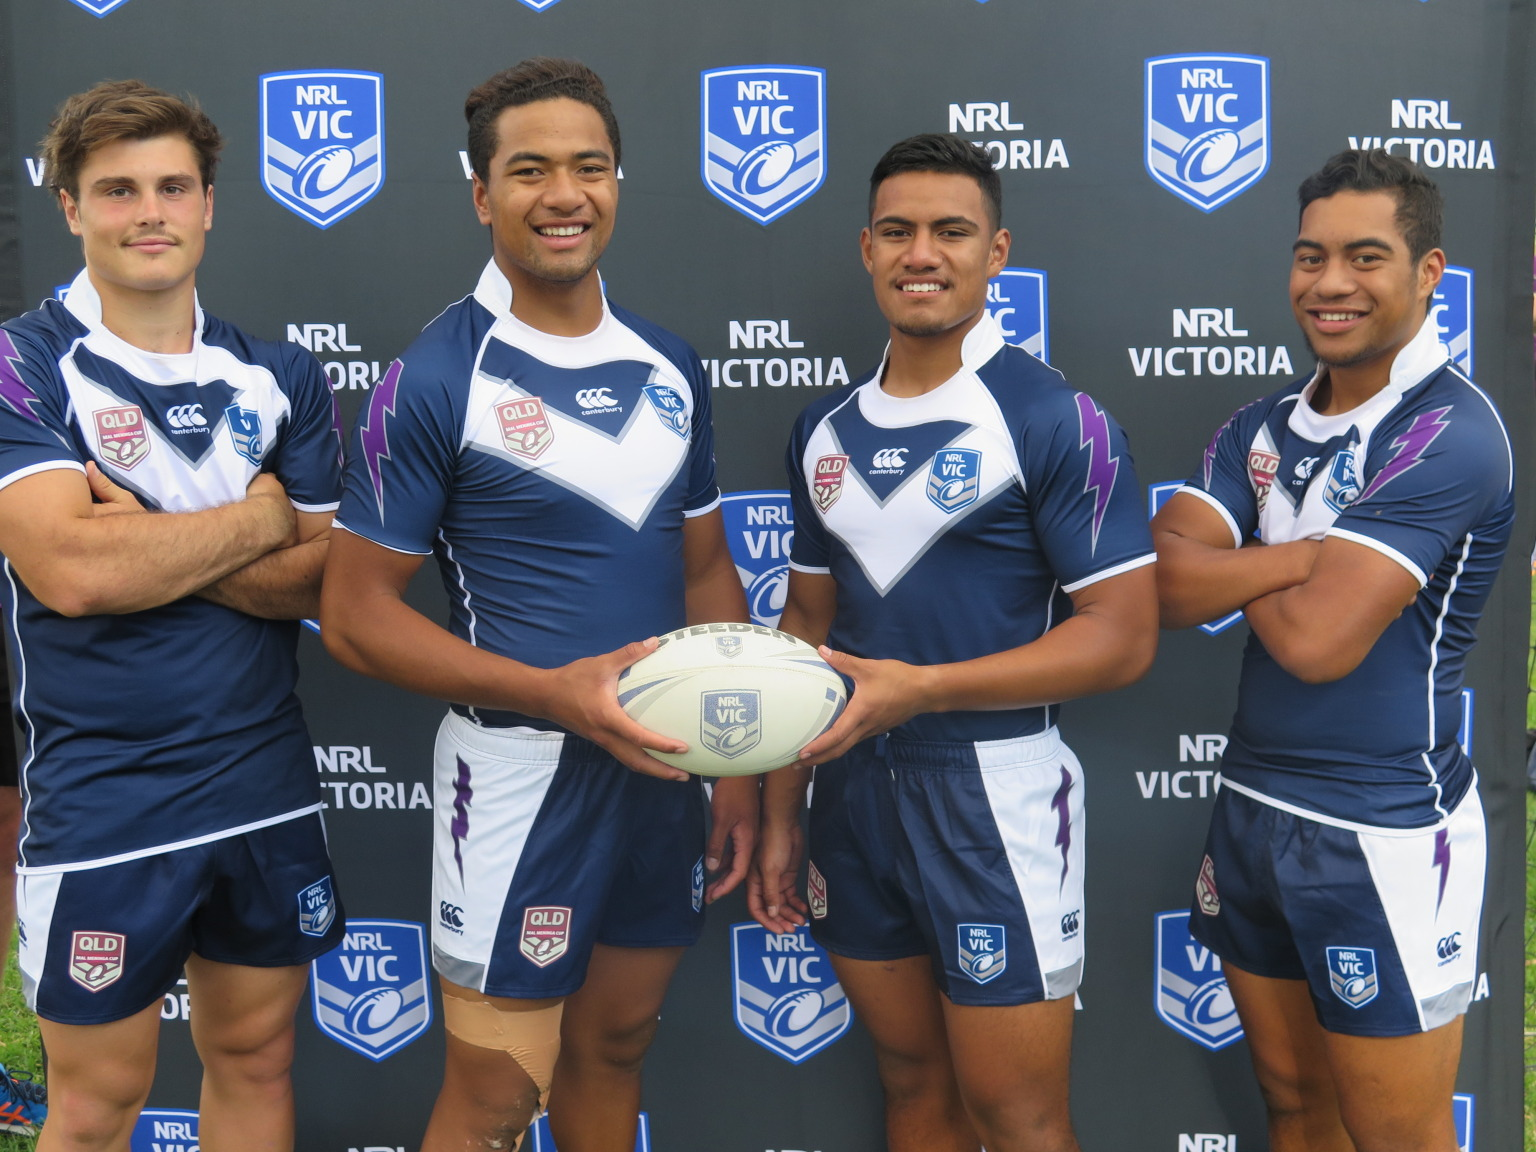 Nrl Victoria Us Junior Reps Us And Us Trials Nrl Victoria Sportstg